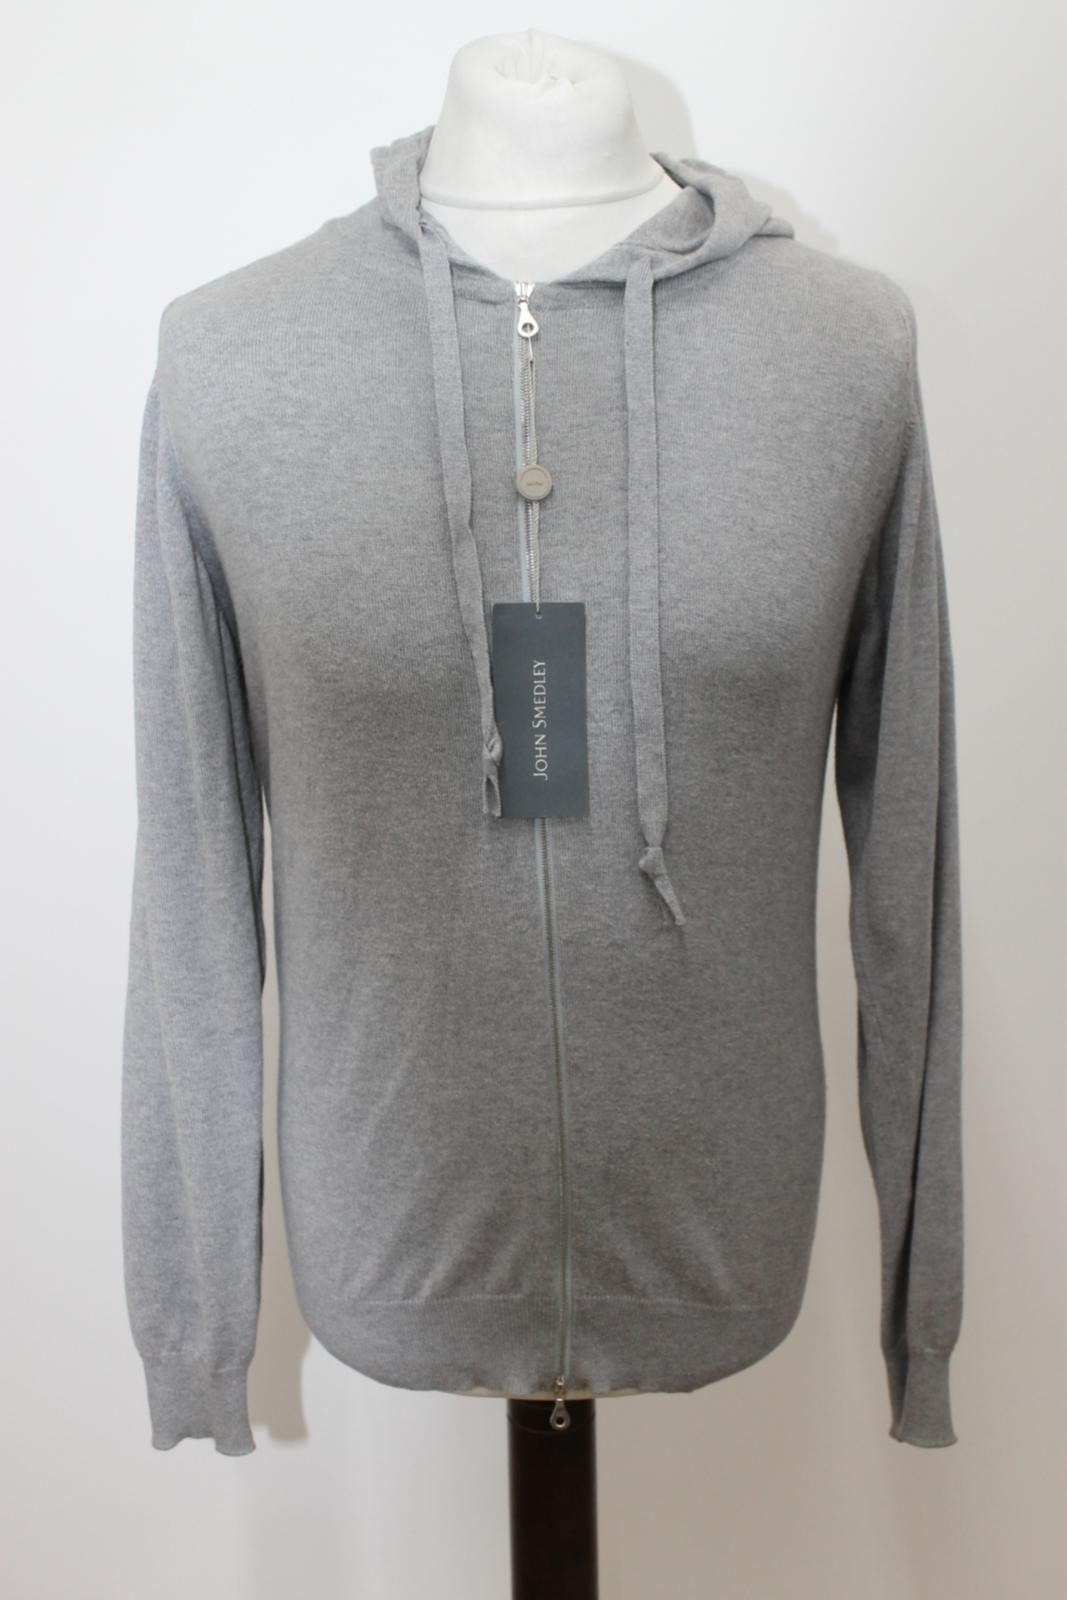 Imported From Abroad New John Smedley Men's Grey 100% Cotton Zip Up Hooded Cardigan Top Size S Keep You Fit All The Time Sweaters Clothing, Shoes & Accessories